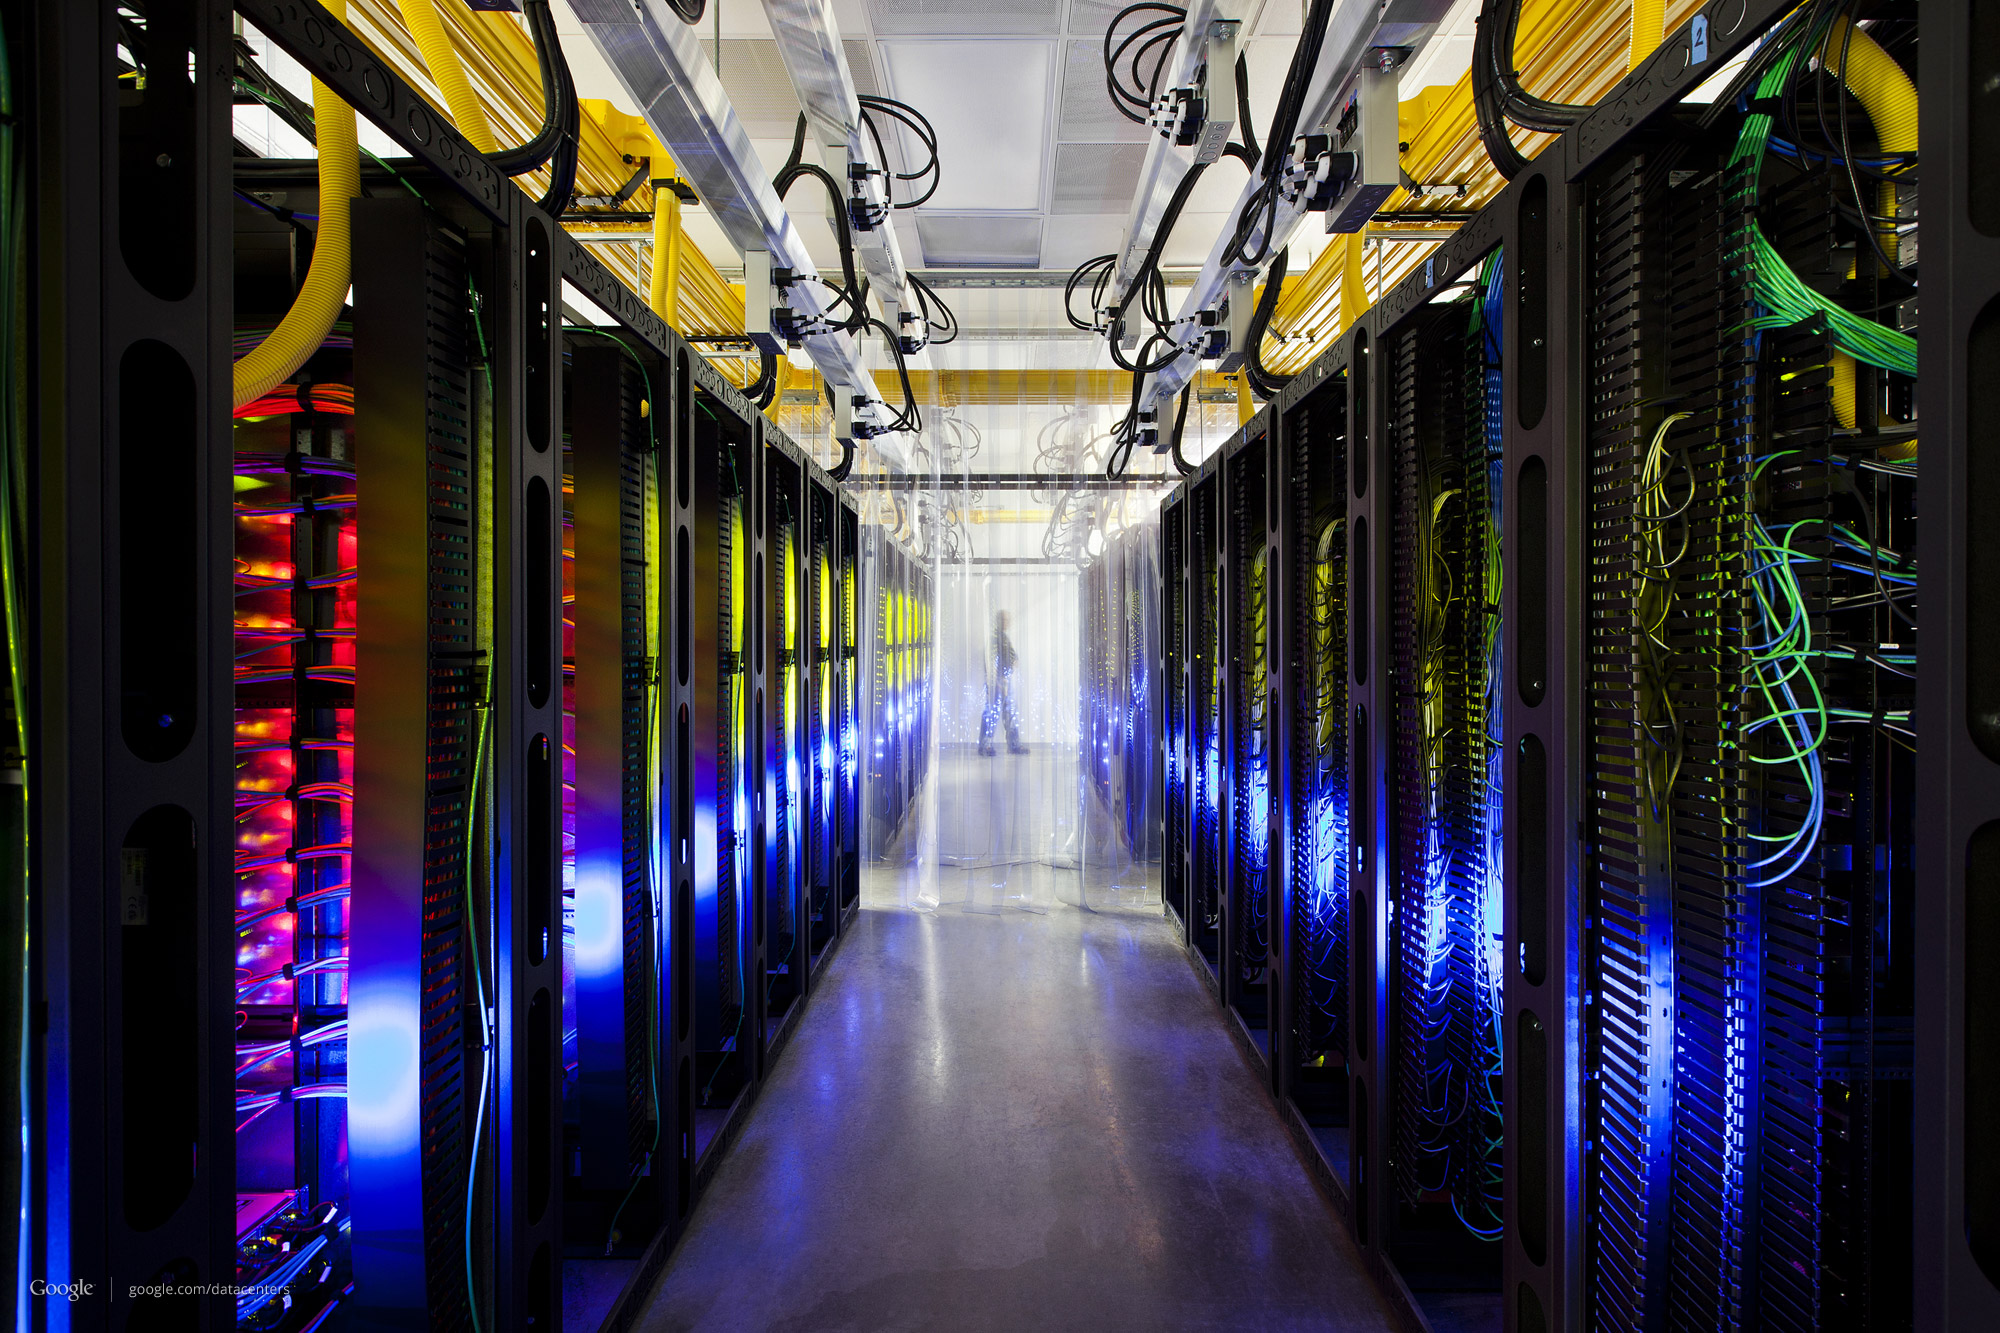 Photo: The final, layered photo of the campus network room in Iowa (http://goo.gl/6LJvl)